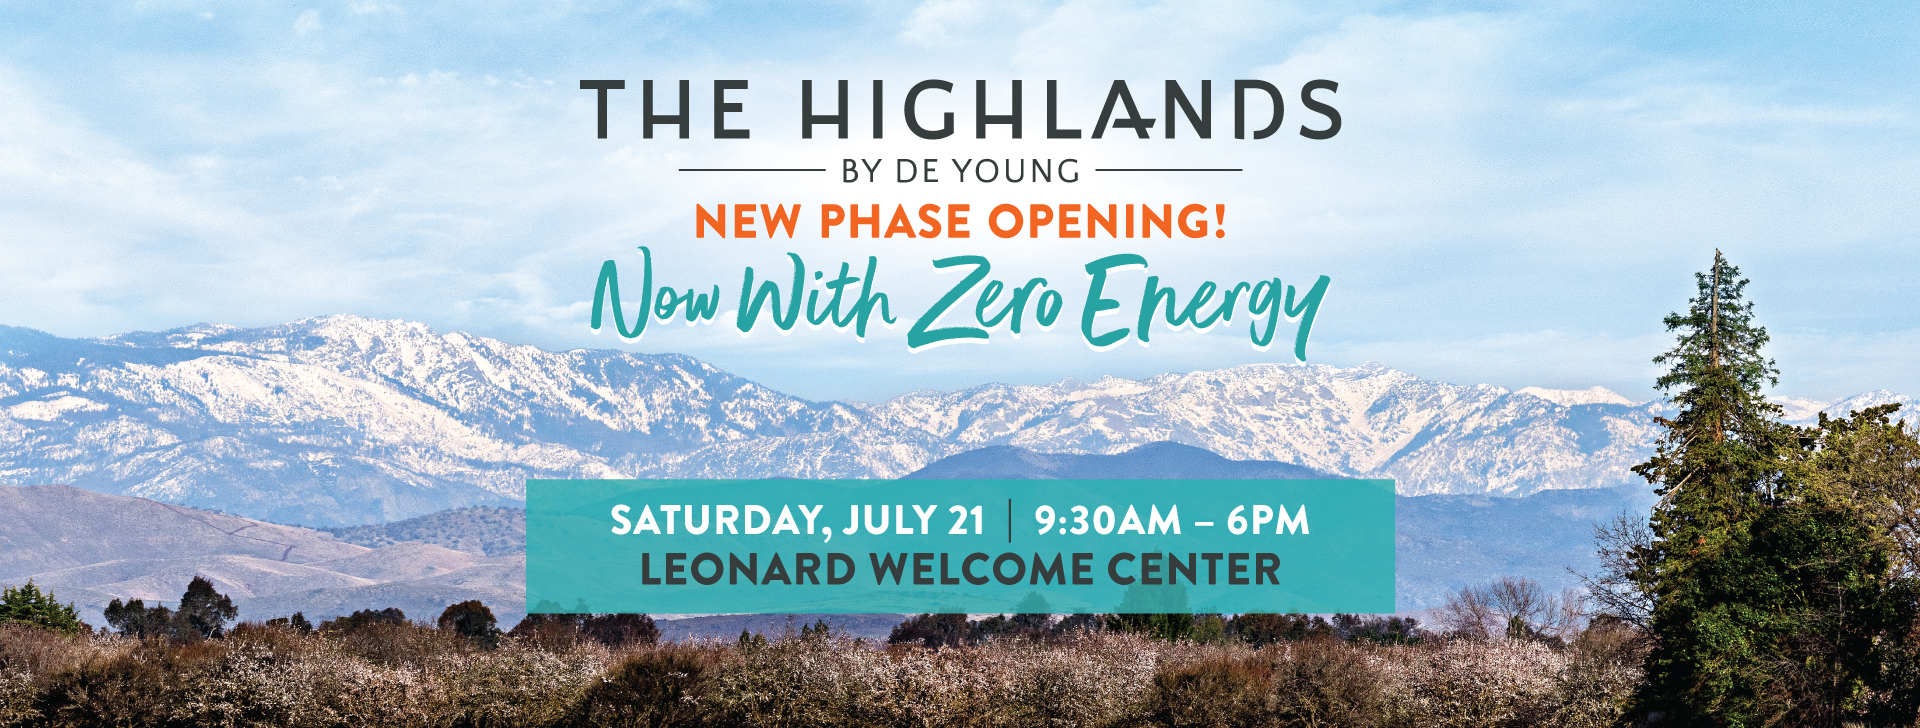 New Zero Energy Homesites Releasing THIS SATURDAY at The Highlands by De Young!